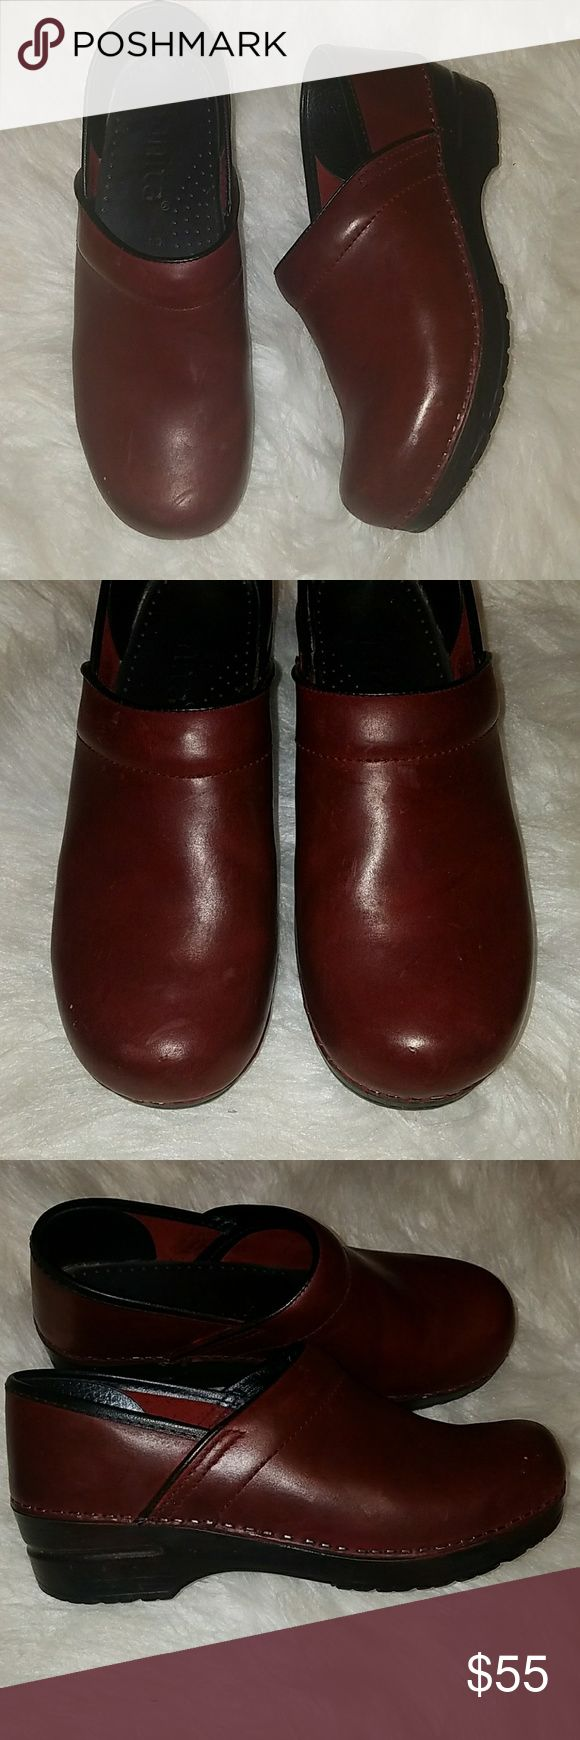 Sanita Deep Red Burgundy Brown Clogs Size 39 Sanita Size 39 Clogs. These fit a US size 8 or 8.5 in Womens. Theu are in very nice condition, only worn a handful of times. They have some normal scratches on the leather but overall look wonderful. They are a unique color - between deep red, burgundy and brown. Retails for $140. Sanita Shoes Mules & Clogs